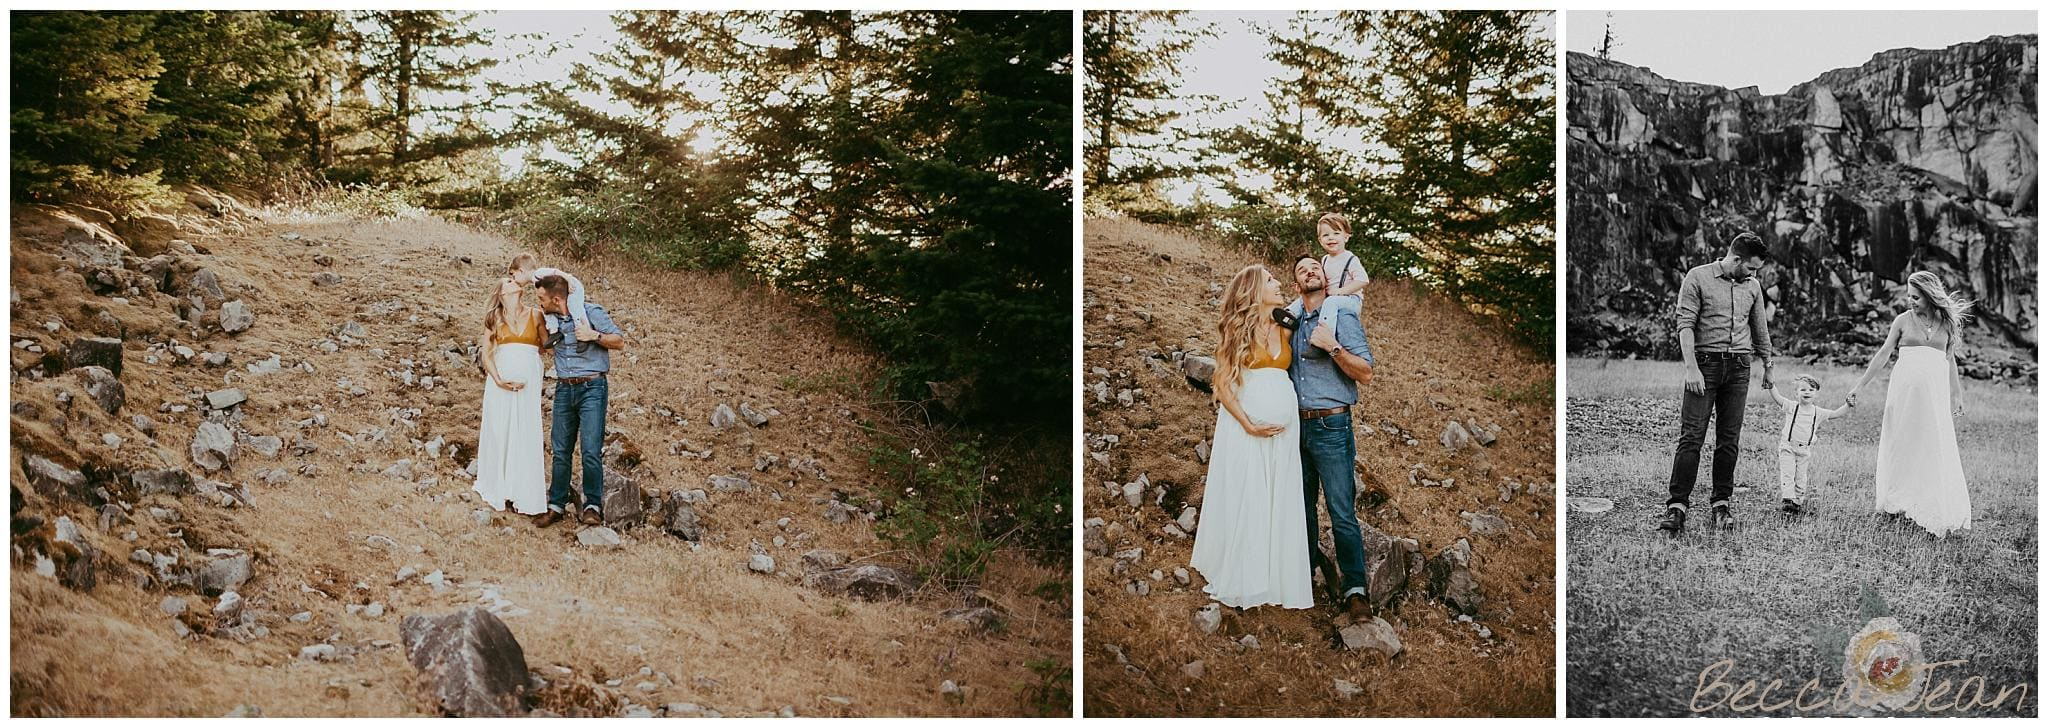 family maternity photos in the columbia river gorge